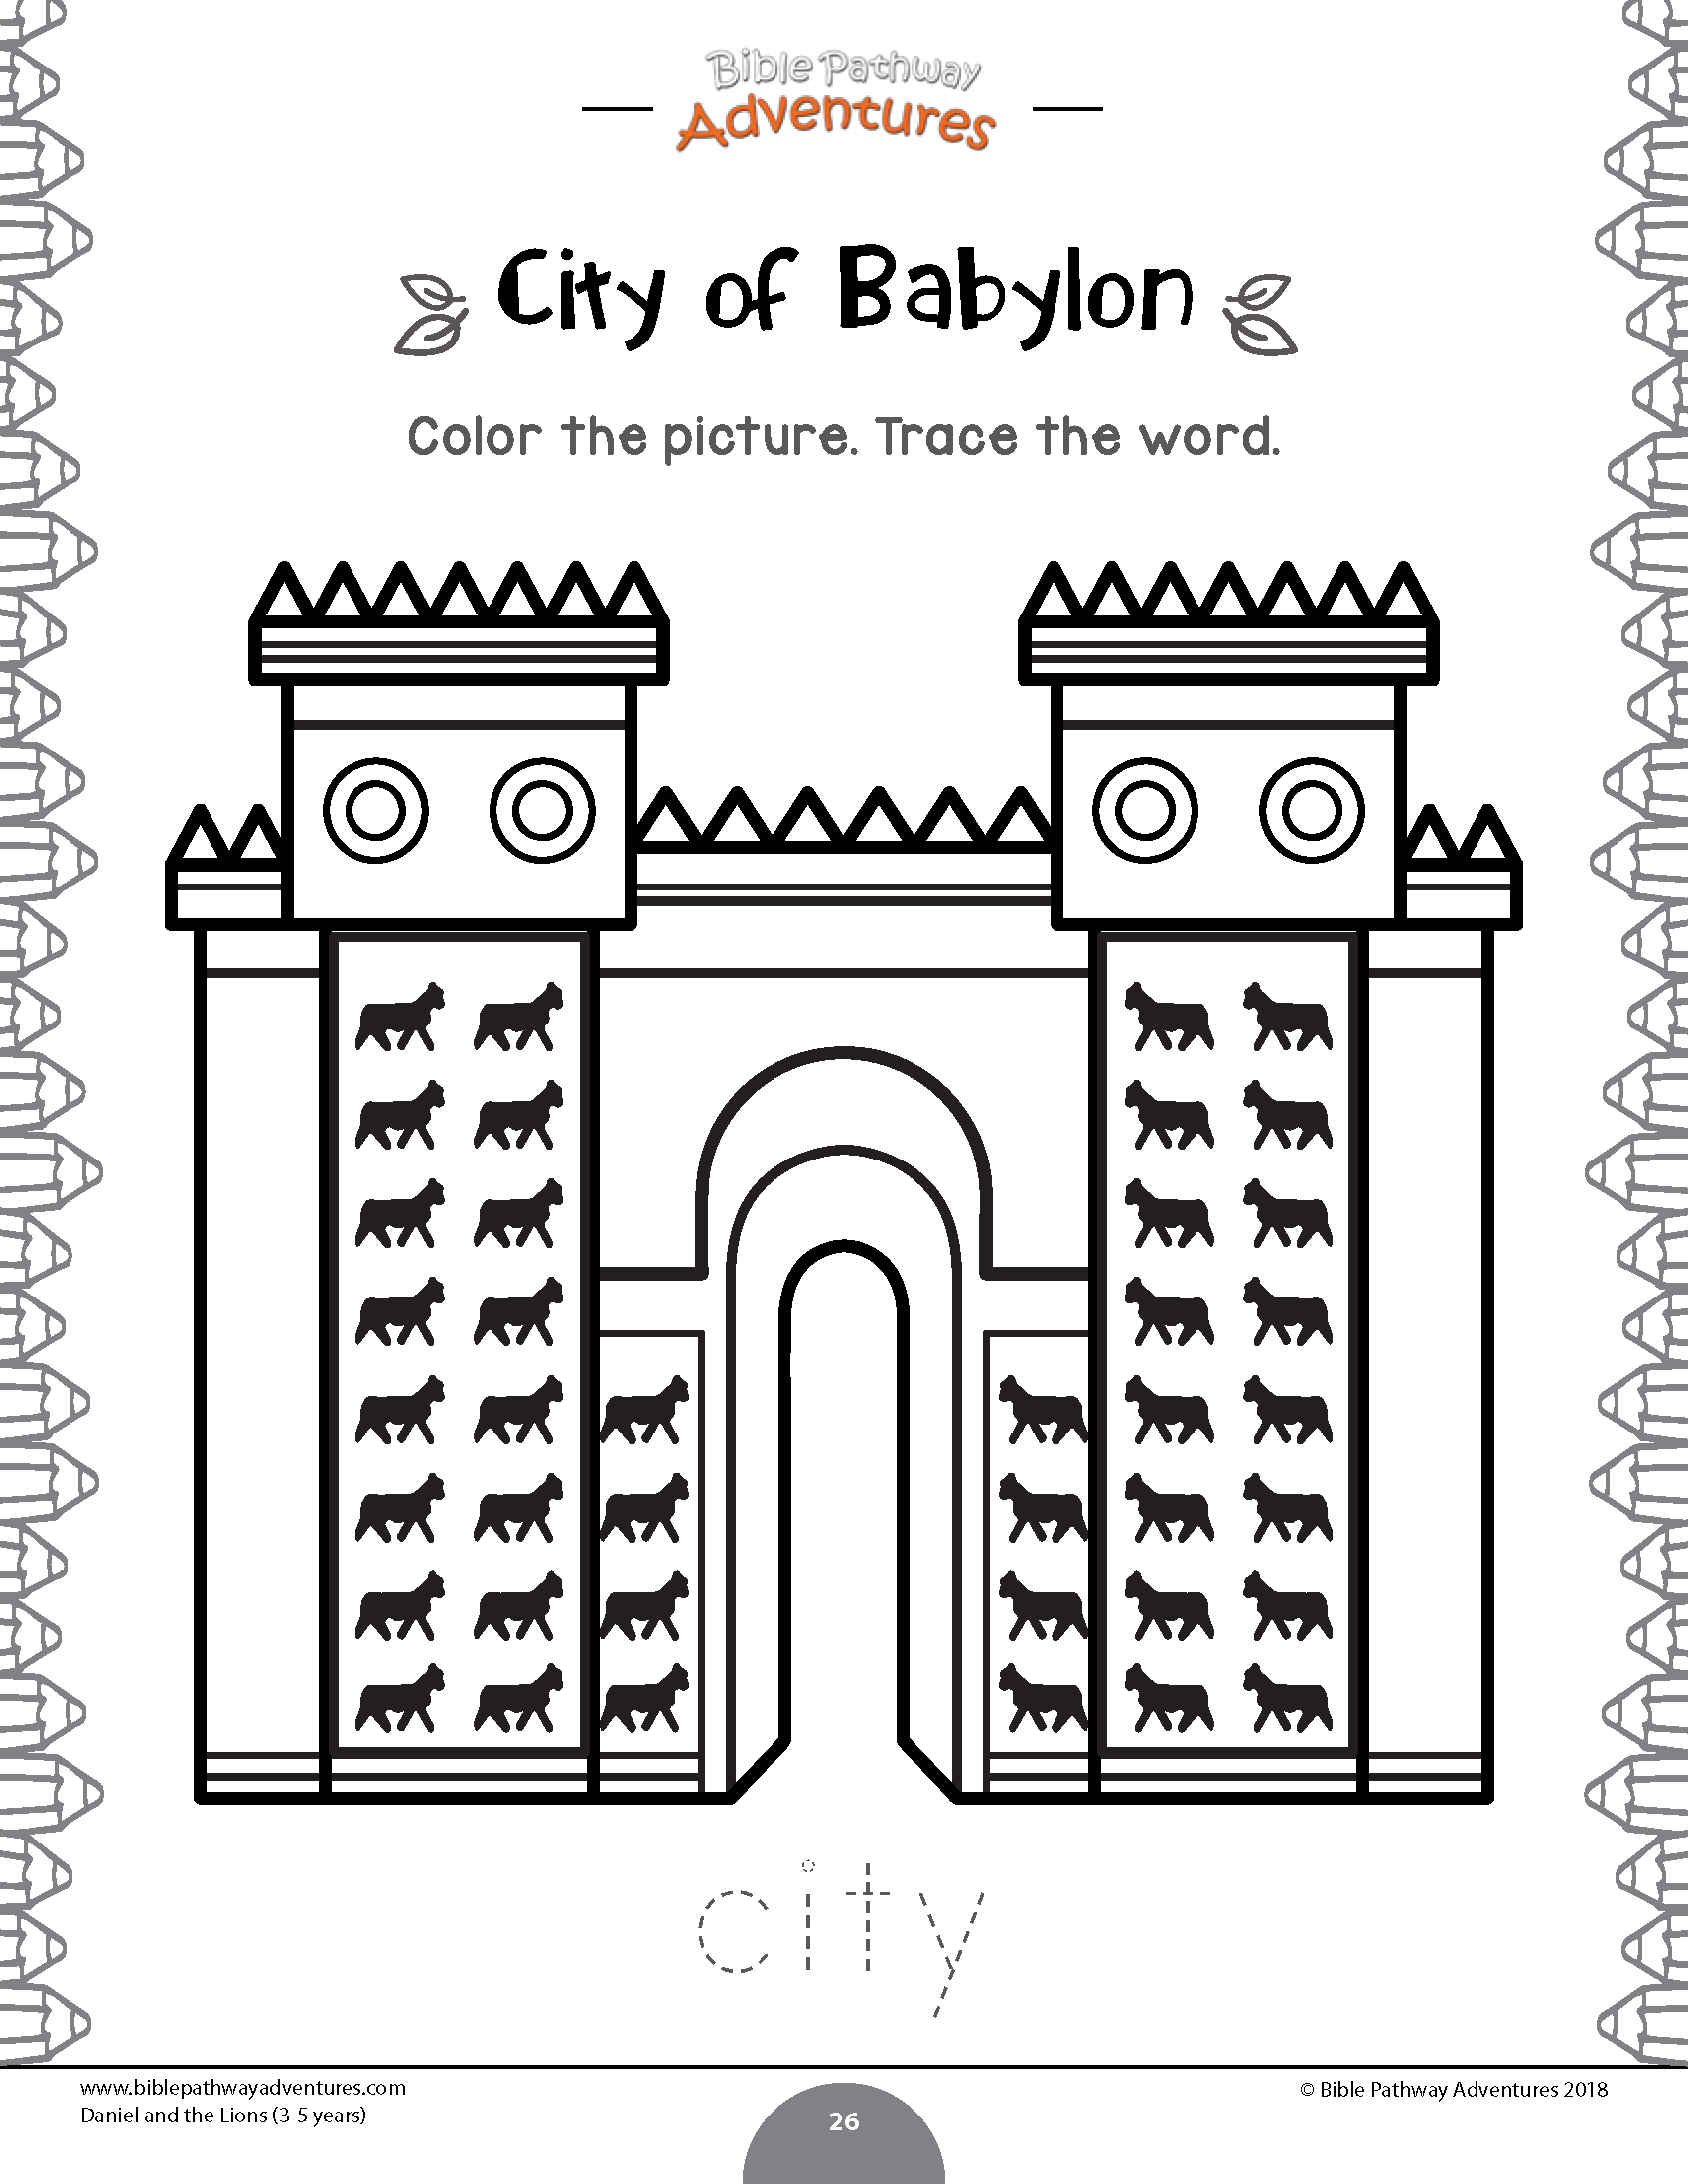 City of Babylon coloring page (from Daniel and the Lions